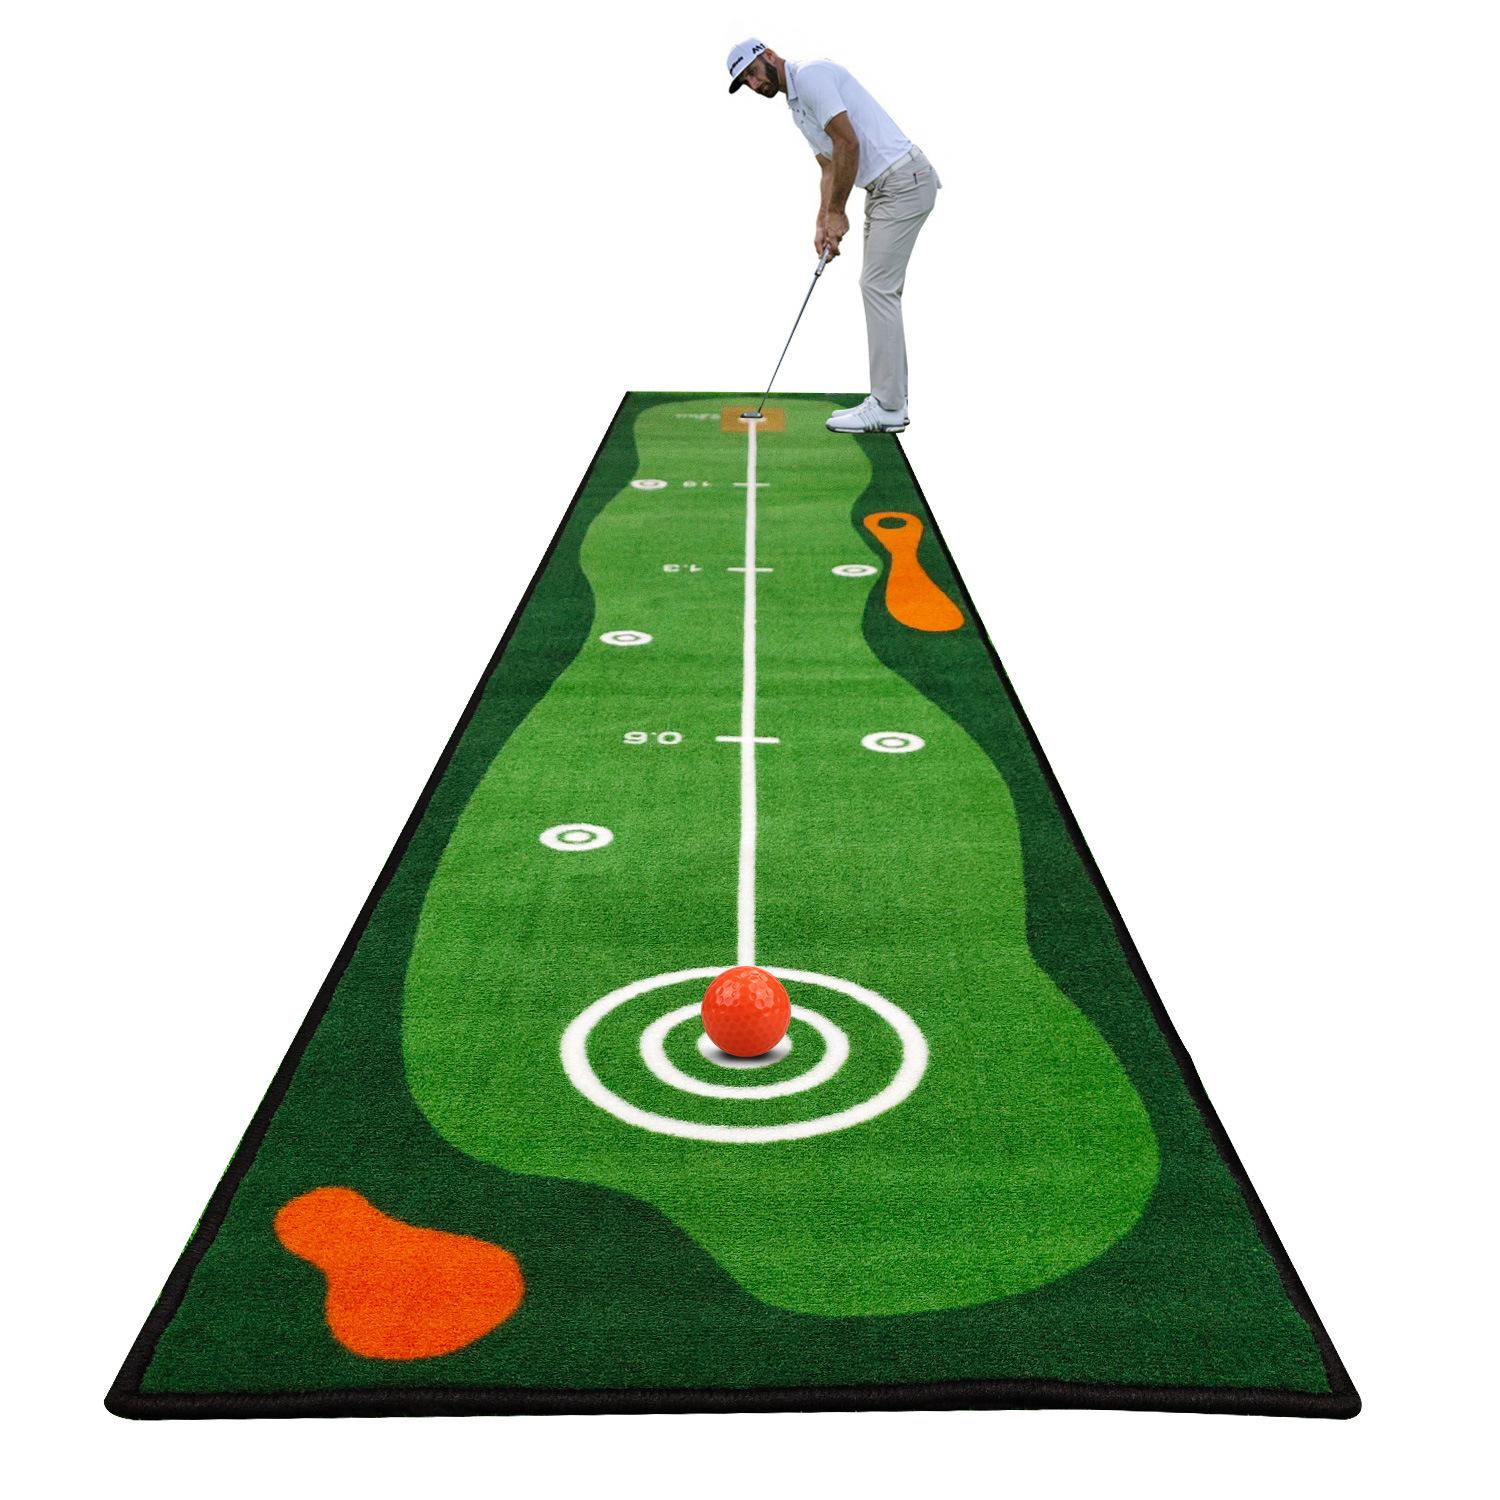 Indoor golf green family practice portable putter mini golf green practice blanket blanket kit can be folded and stored practice mat